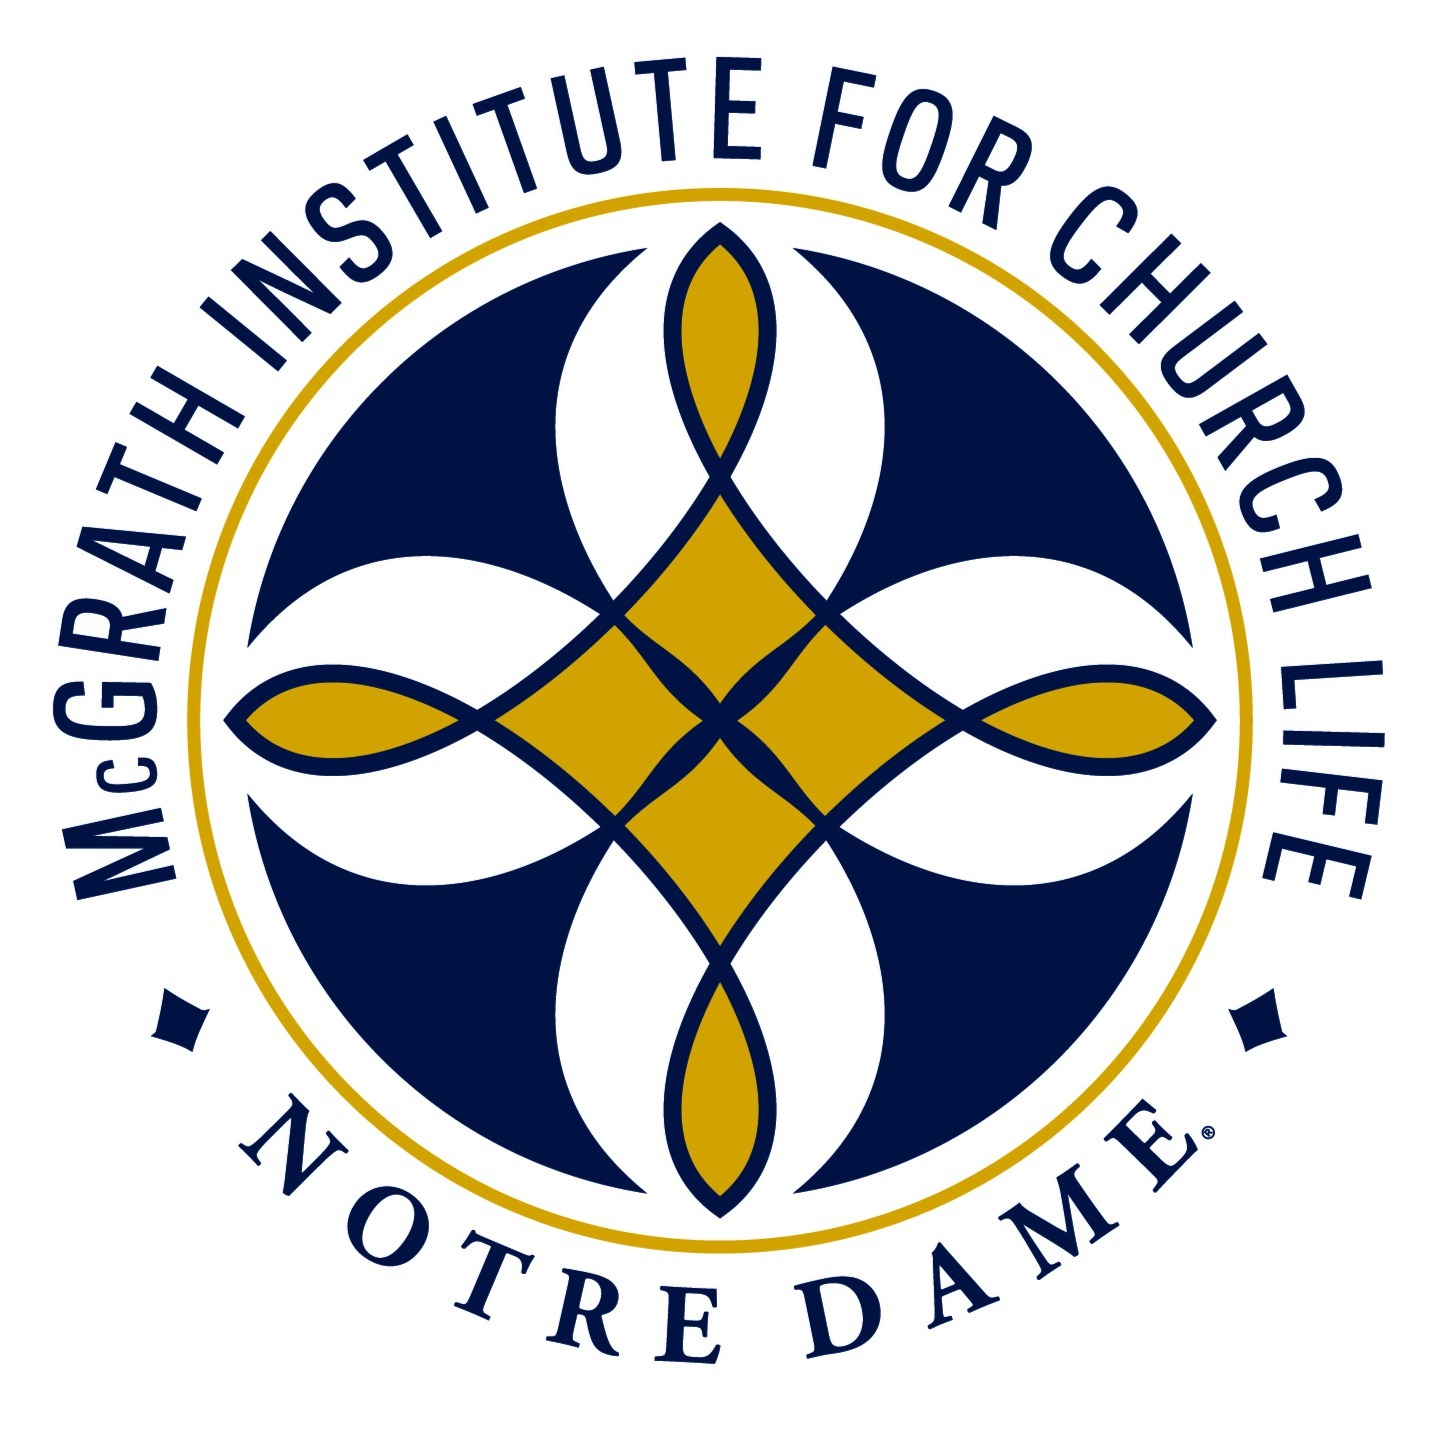 McGrath Institute for Church Life - Notre Dame Day 2018